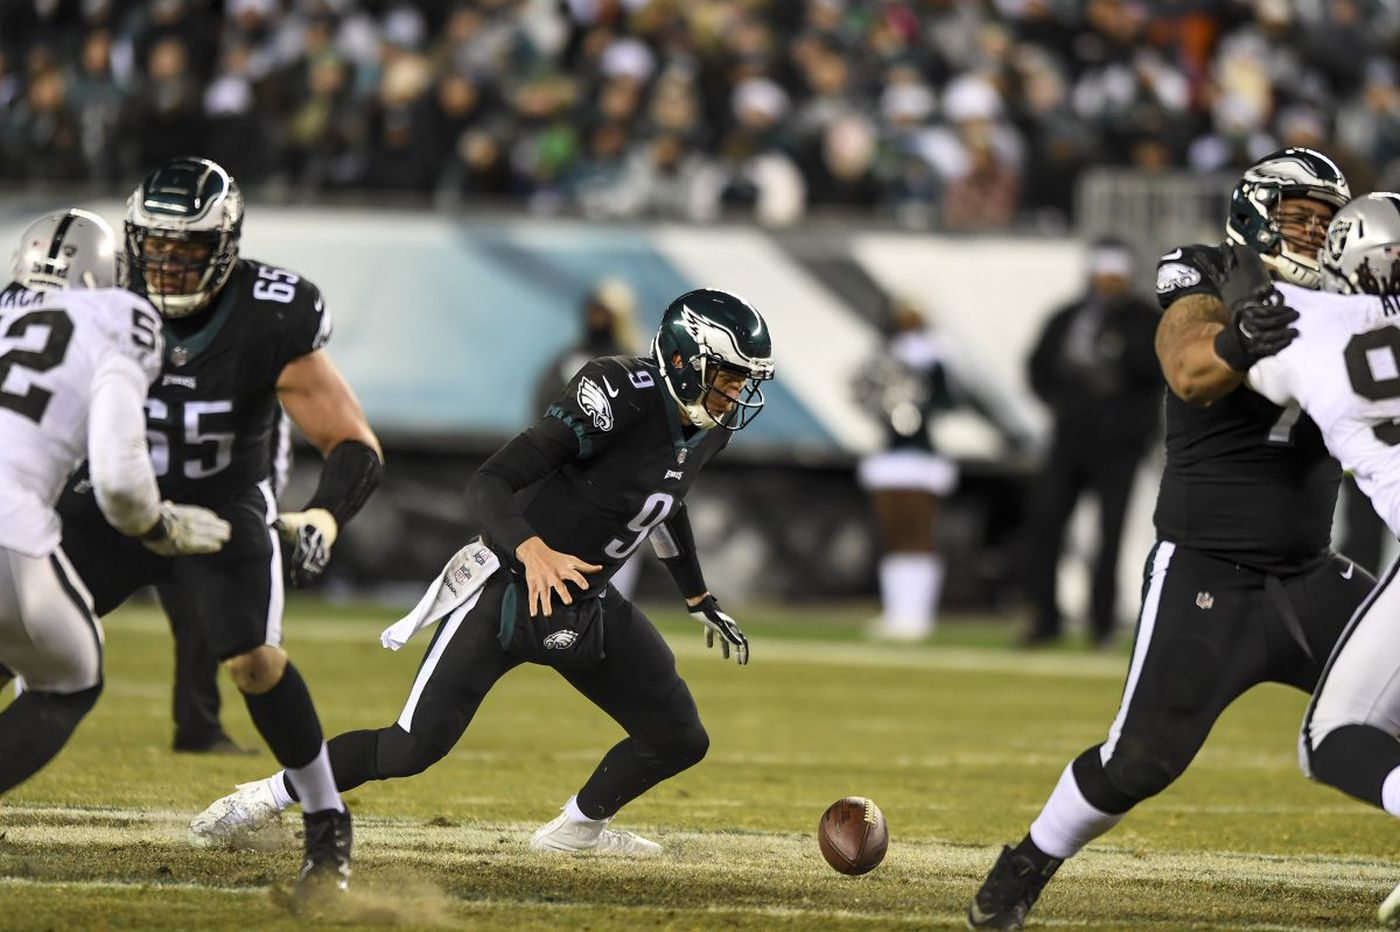 Eagles defense carries Nick Foles most of the way, and he eventually finds the finish line